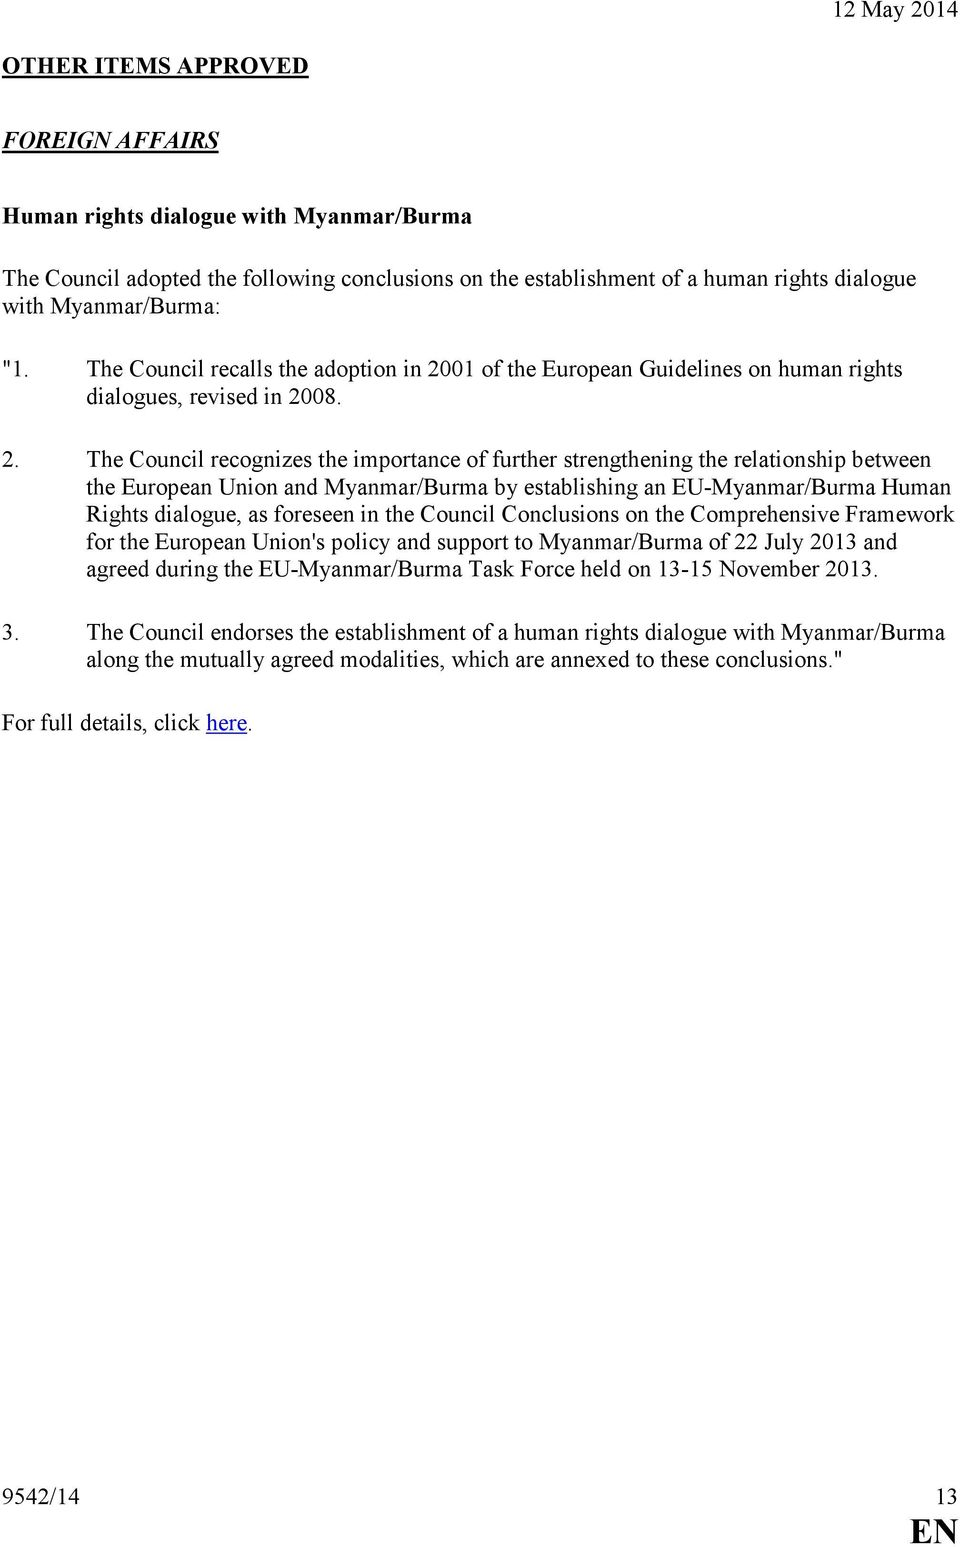 01 of the uropean Guidelines on human rights dialogues, revised in 20